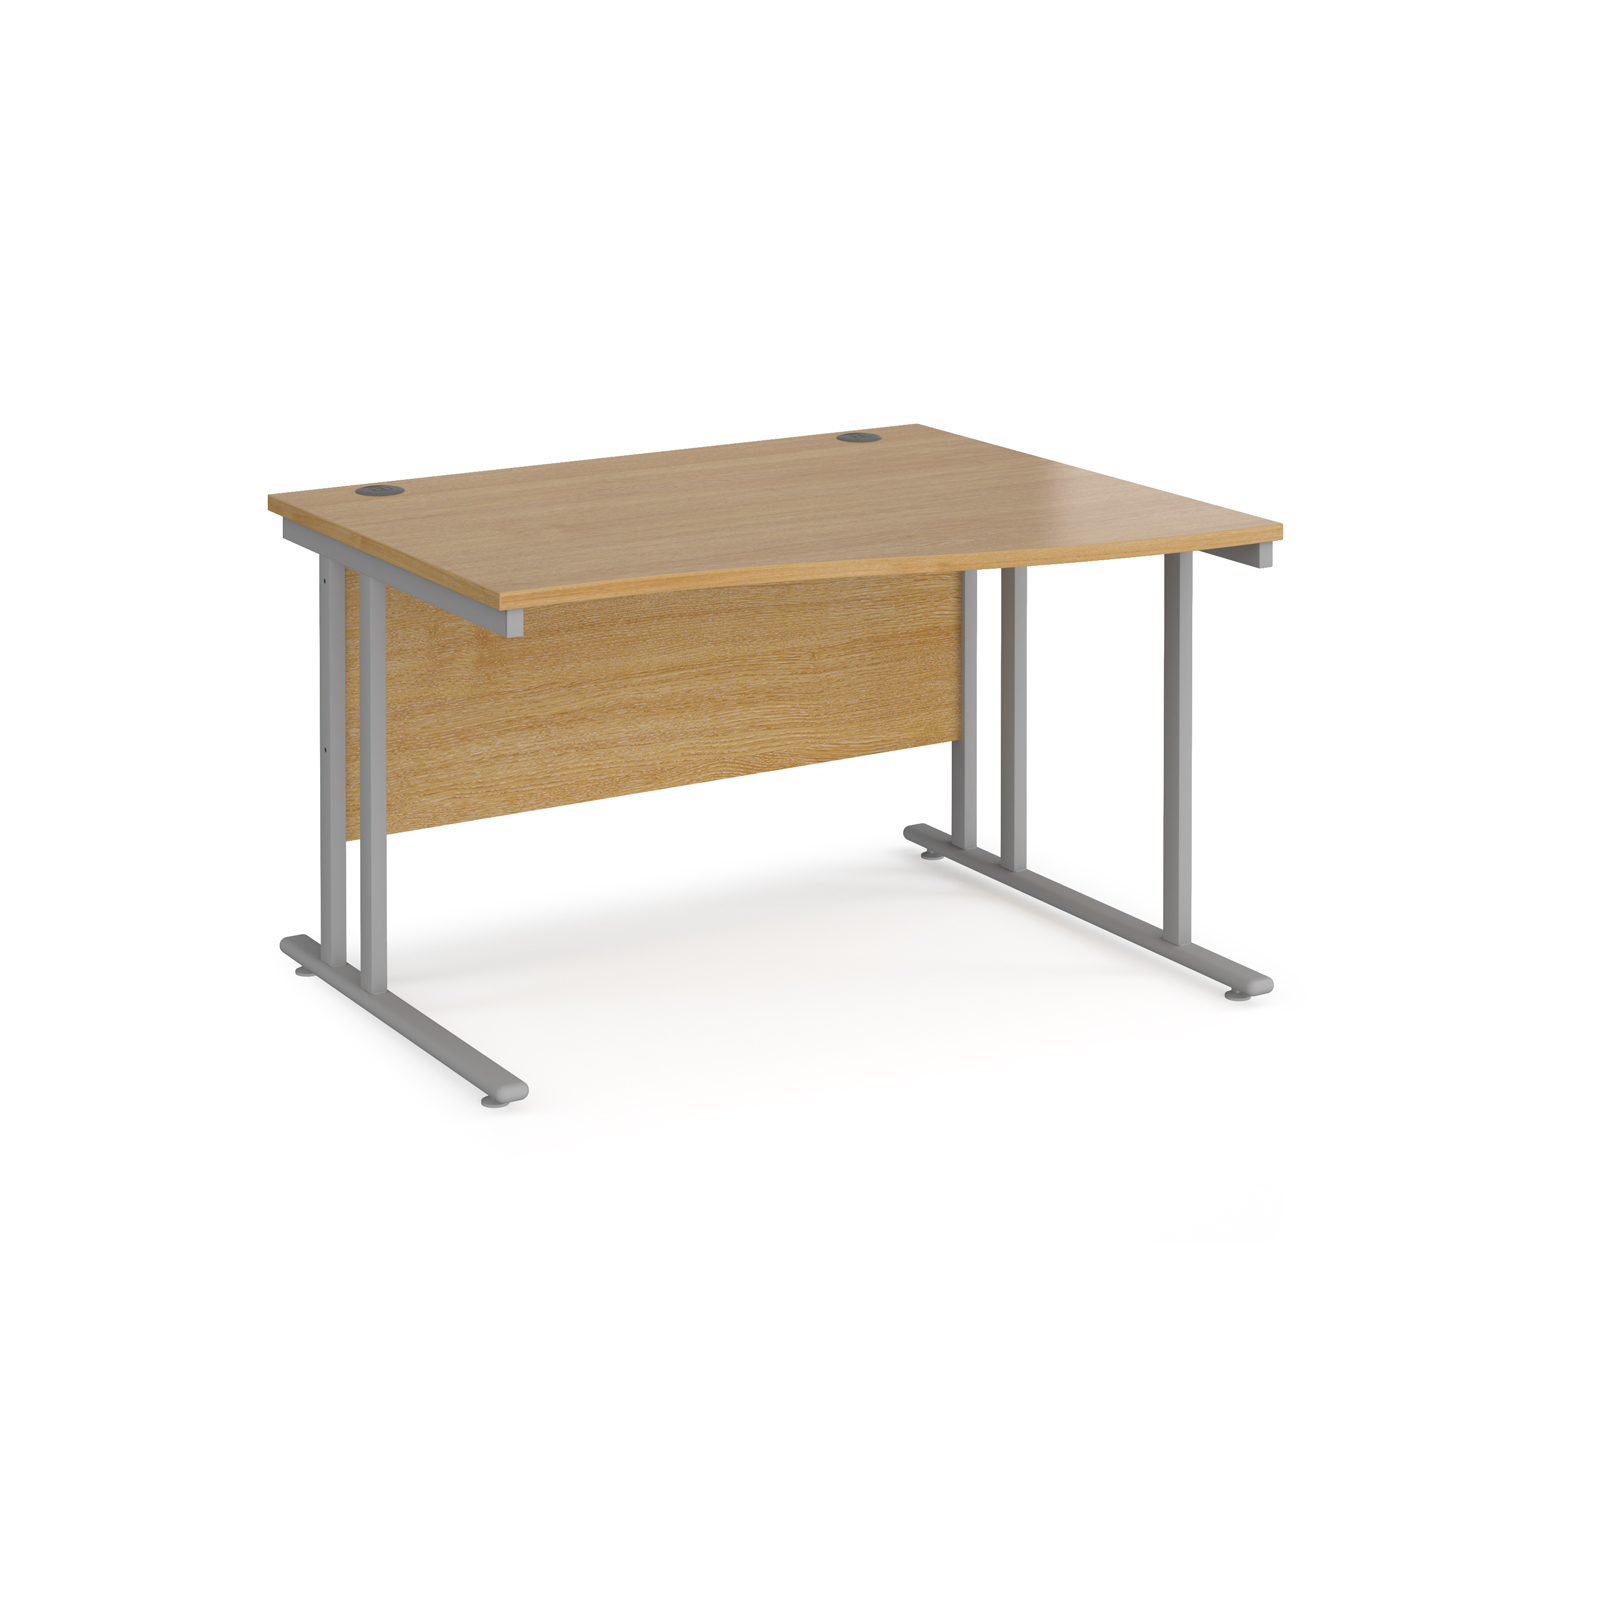 Right Handed Maestro 25 right hand wave desk 1200mm wide - silver cantilever leg frame, oak top